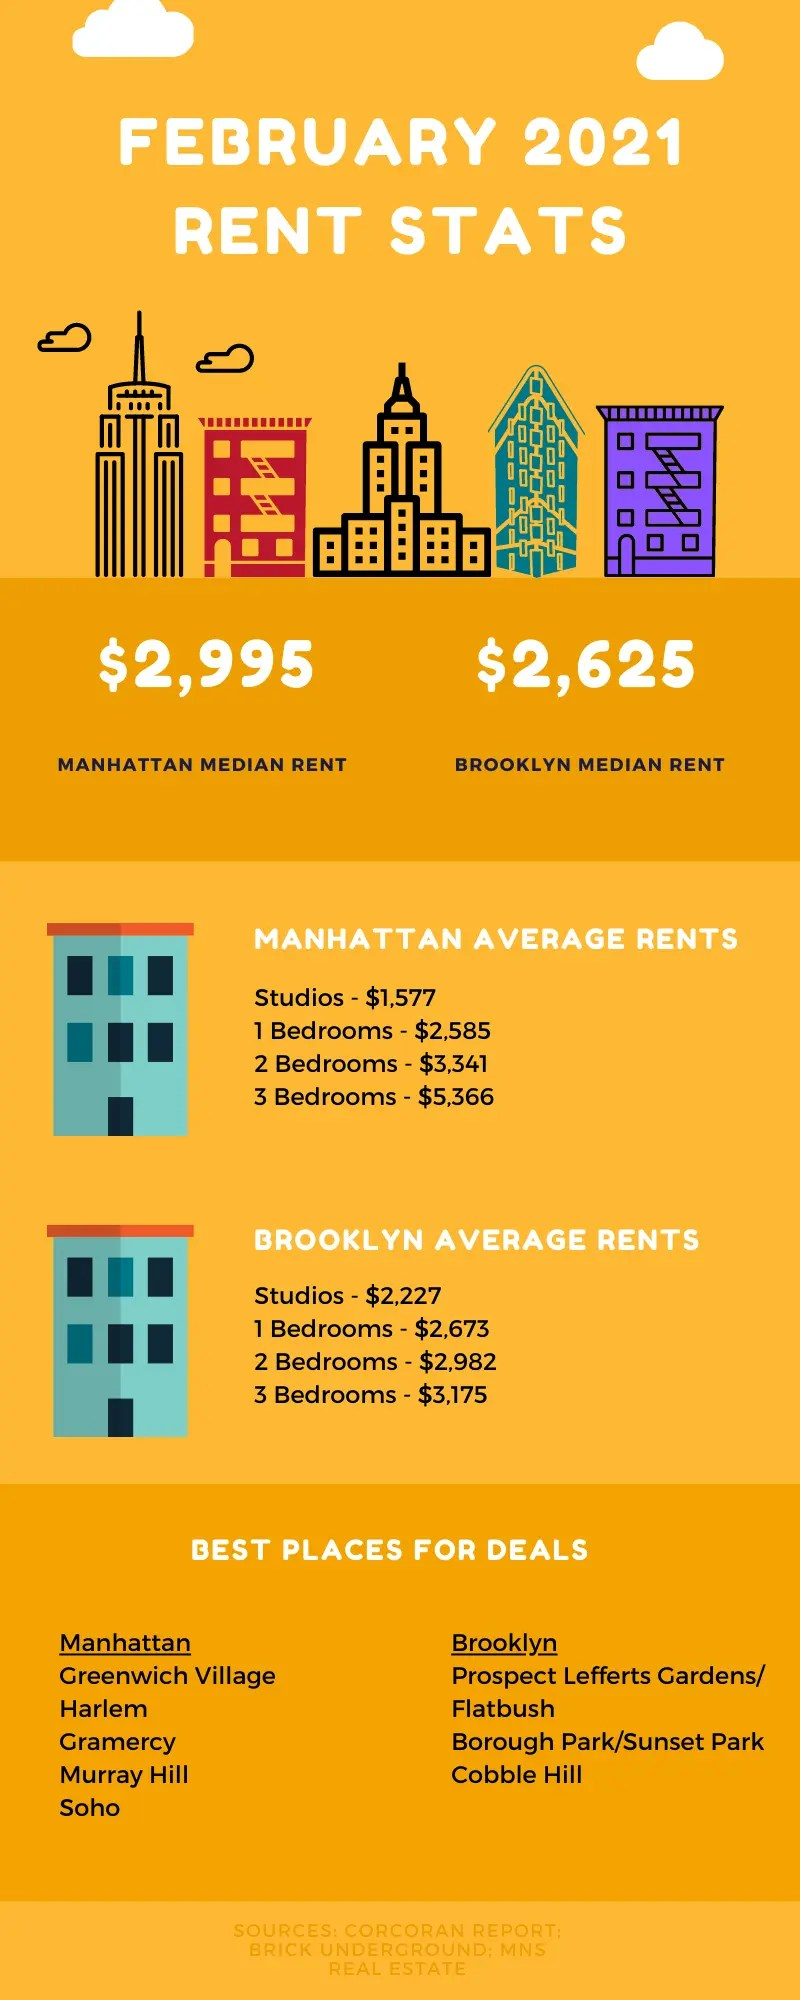 Infographic showing rental market information for the NYC rental market during February 2021